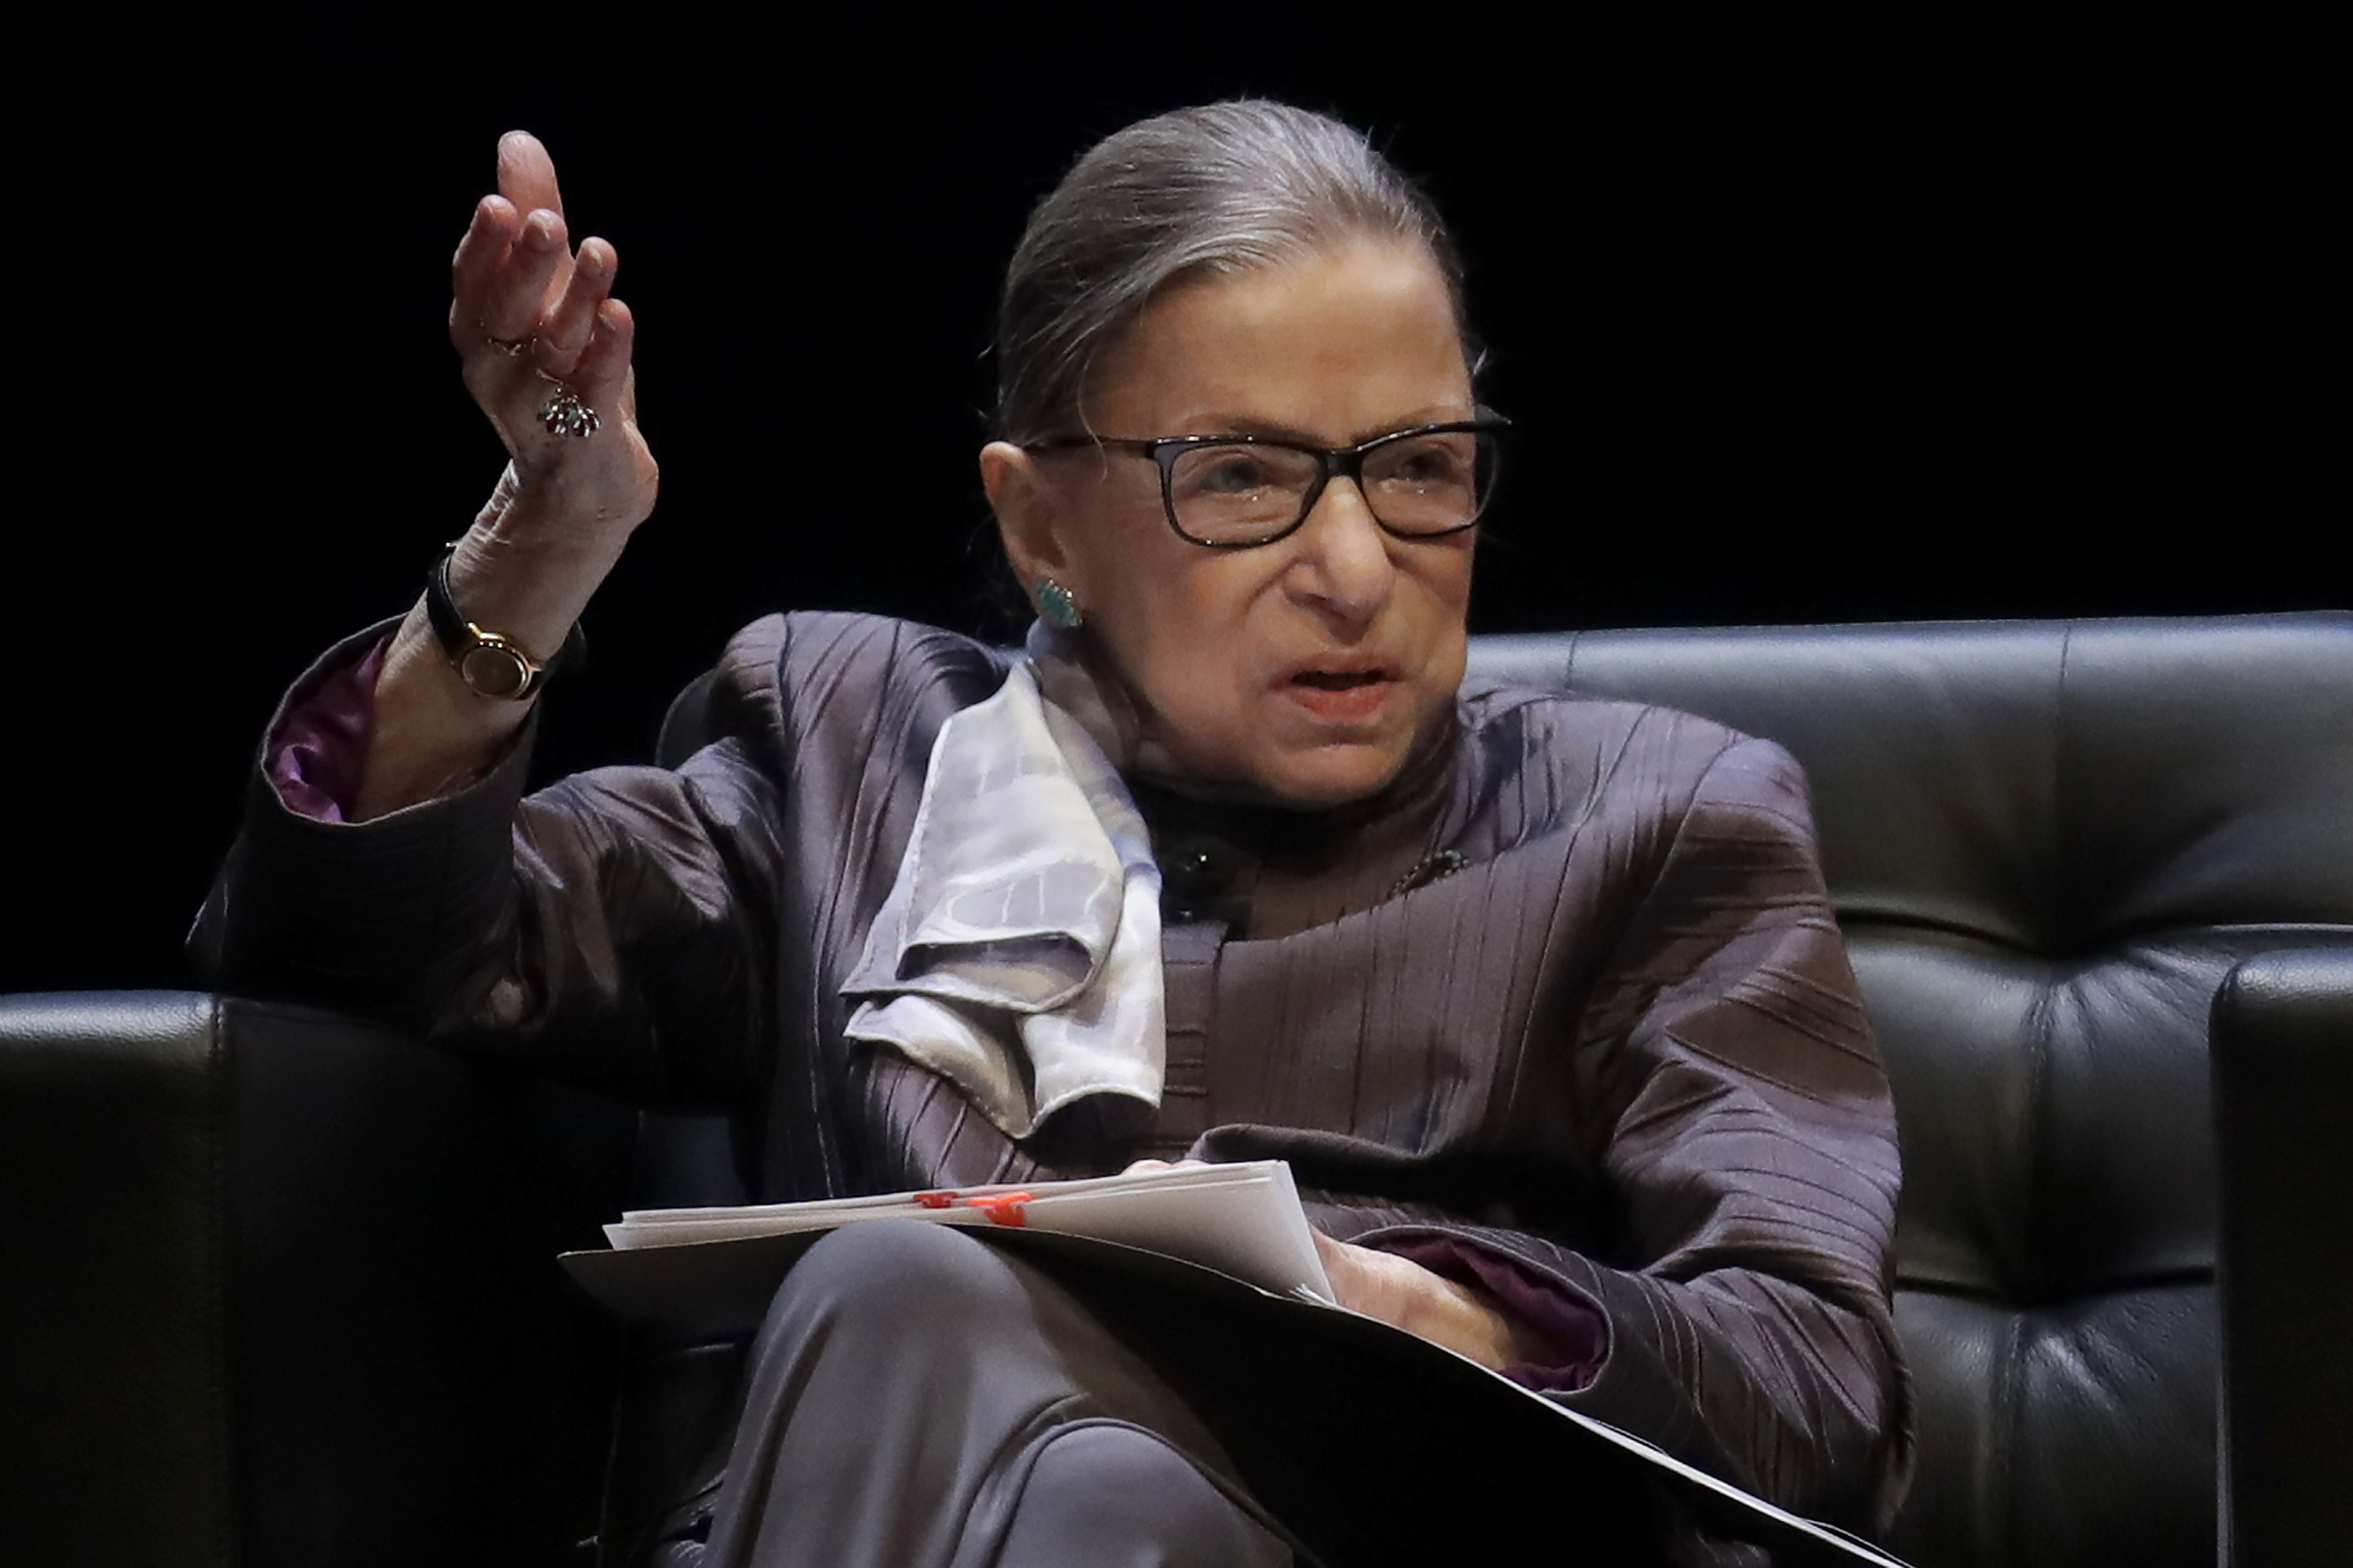 U.S. Supreme Court Justice Ruth Bader Ginsburg gestures while speaking during the inaugural Herma Hill Kay Memorial Lecture at the University of California at Berkeley, in Berkeley, Calif., Oct. 21, 2019.